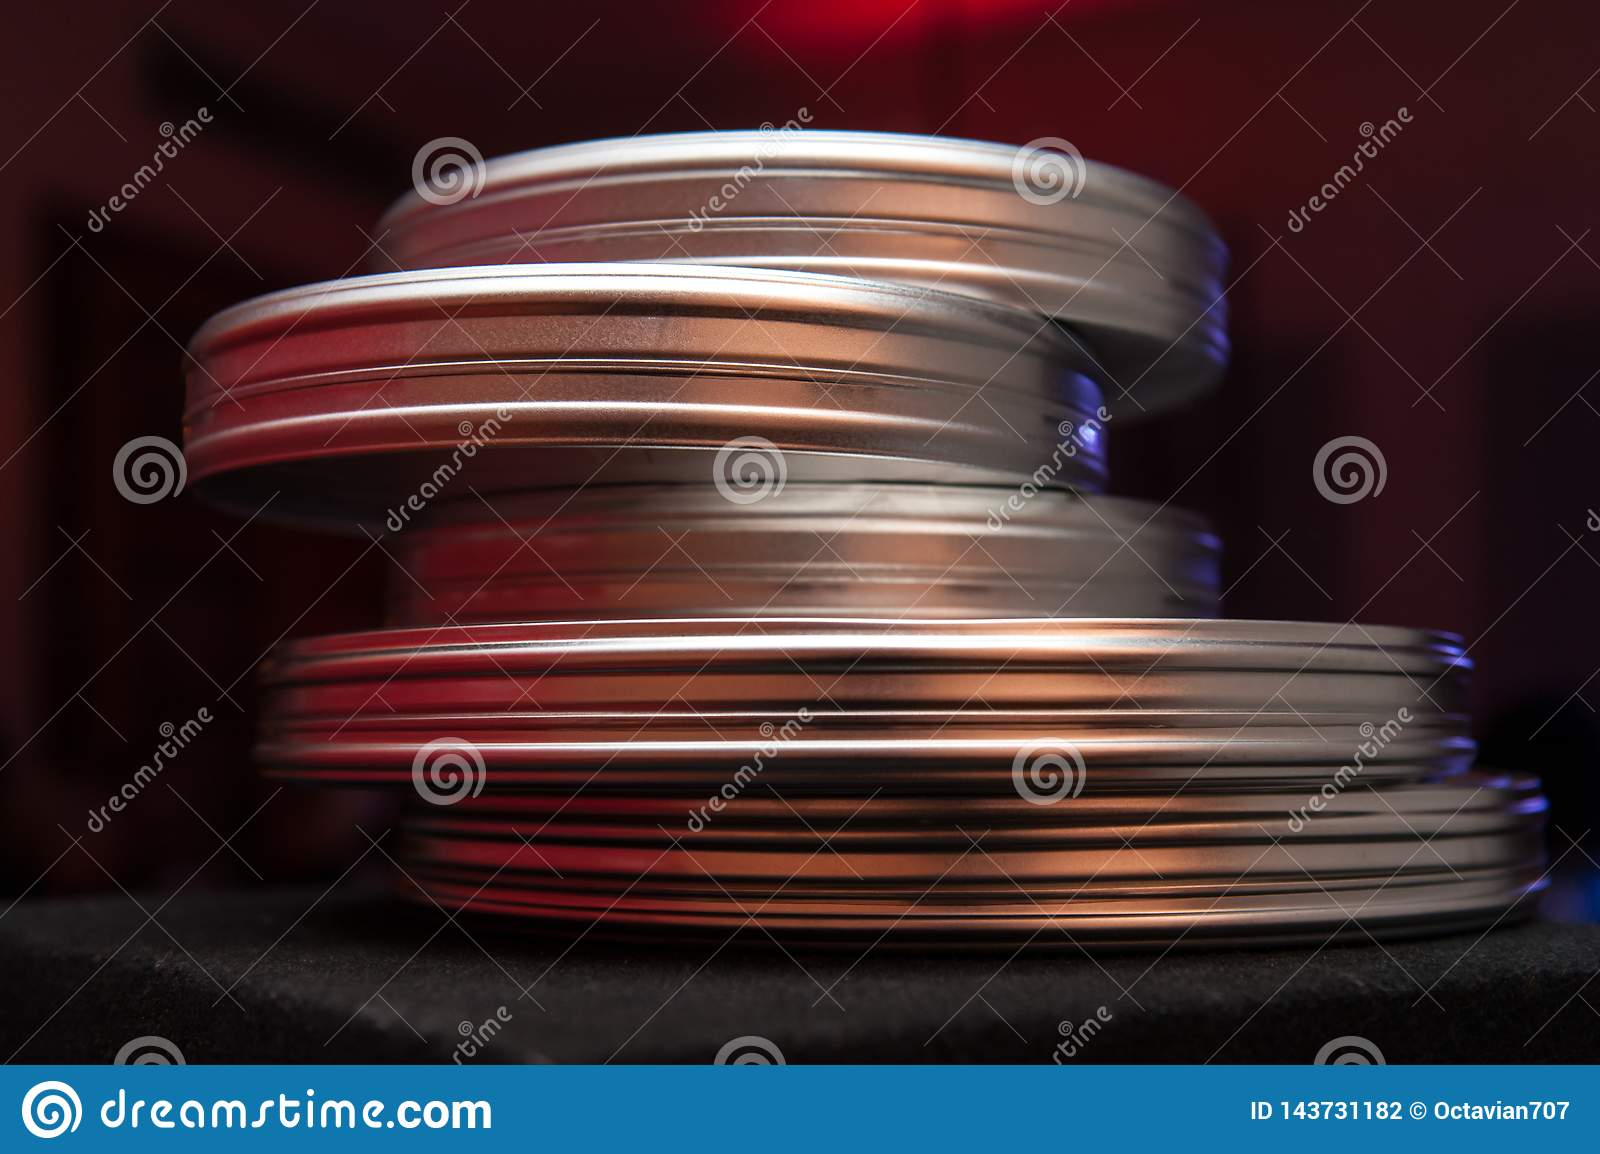 Stack of round film cases